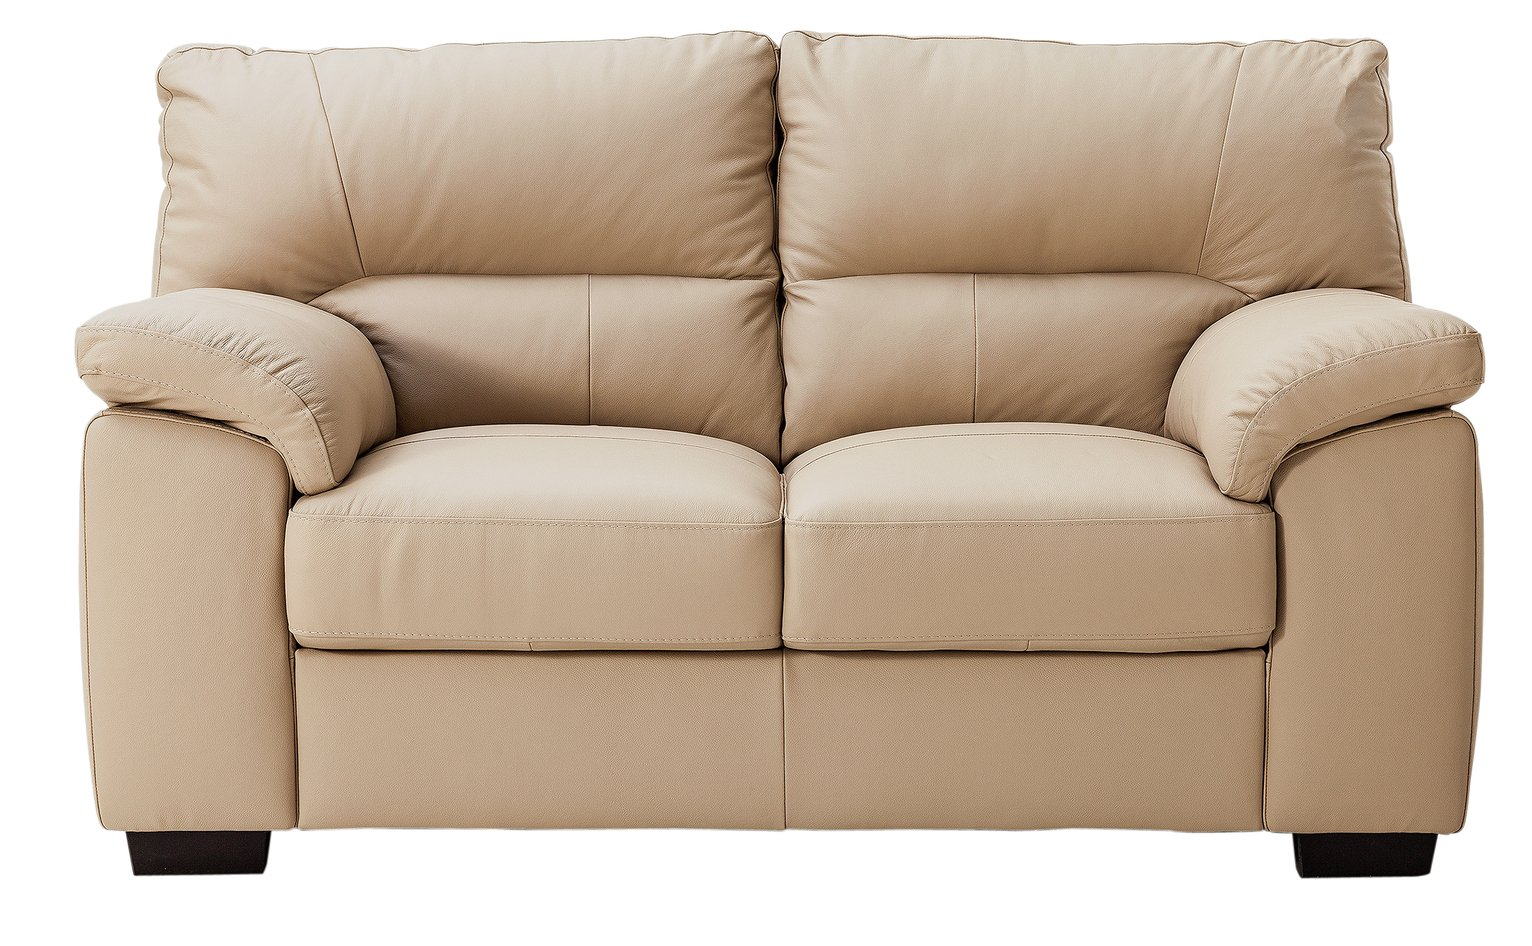 leather sofa cleaner argos willow beds benwick large taupe oak castor feet